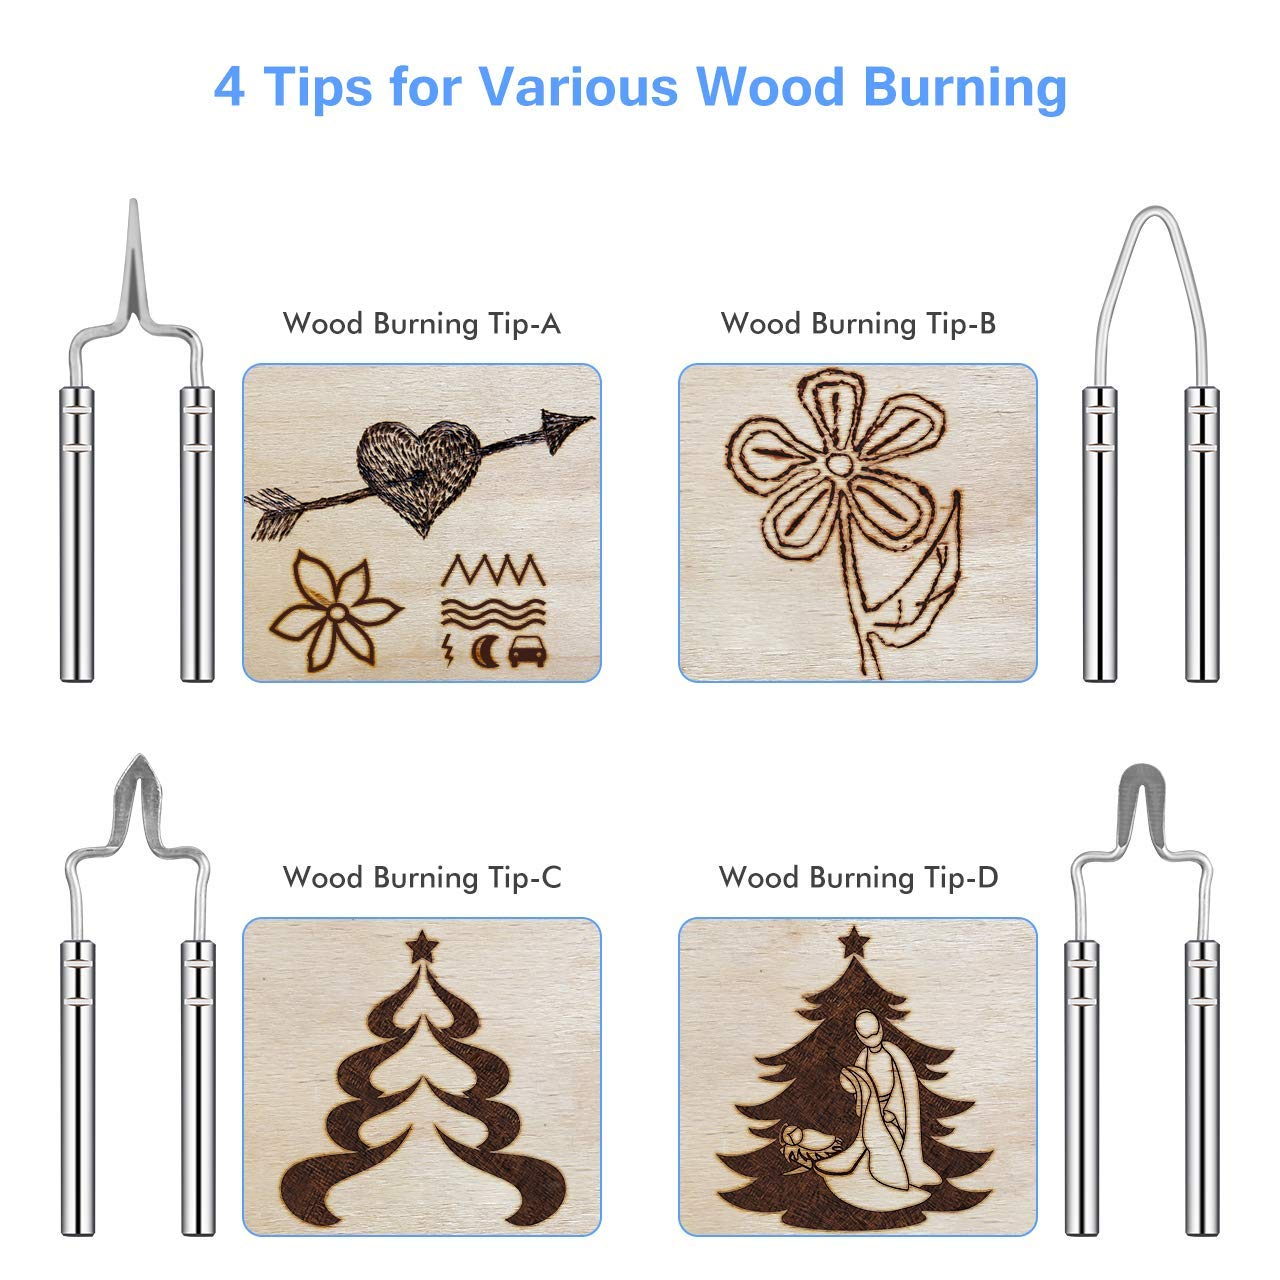 TOPELEK Wood Burning Machine Kit, Professional Woodburning Tool with Fast Heat up Woodburner Pen, Adjustable Temperature, Wire Tips, Stand, Replacement Screws for Wood/Leather/Gourd, Blue by TOPELEK (Image #5)